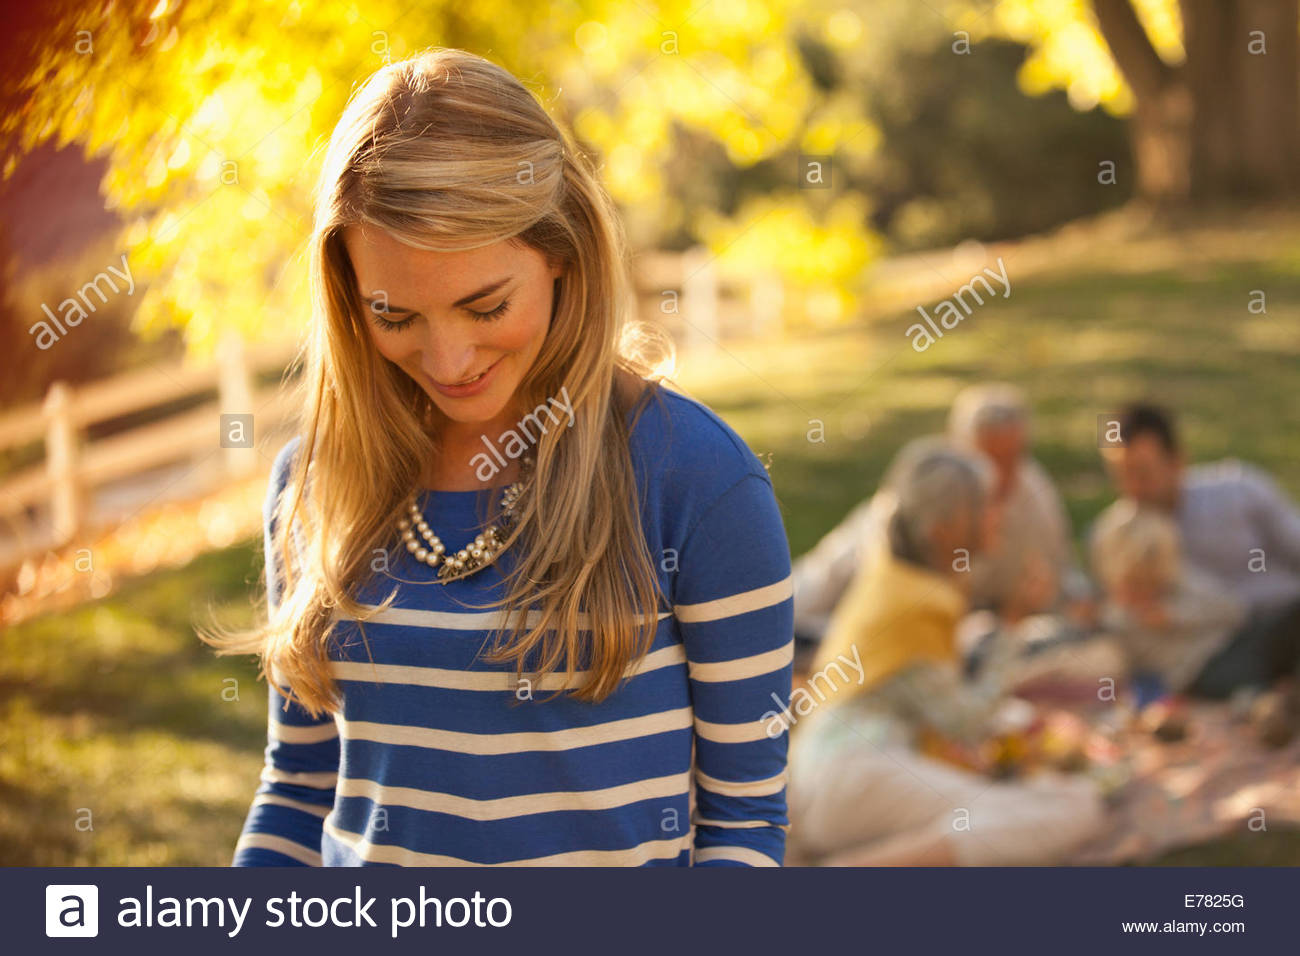 Smiling woman standing outdoors Photo Stock